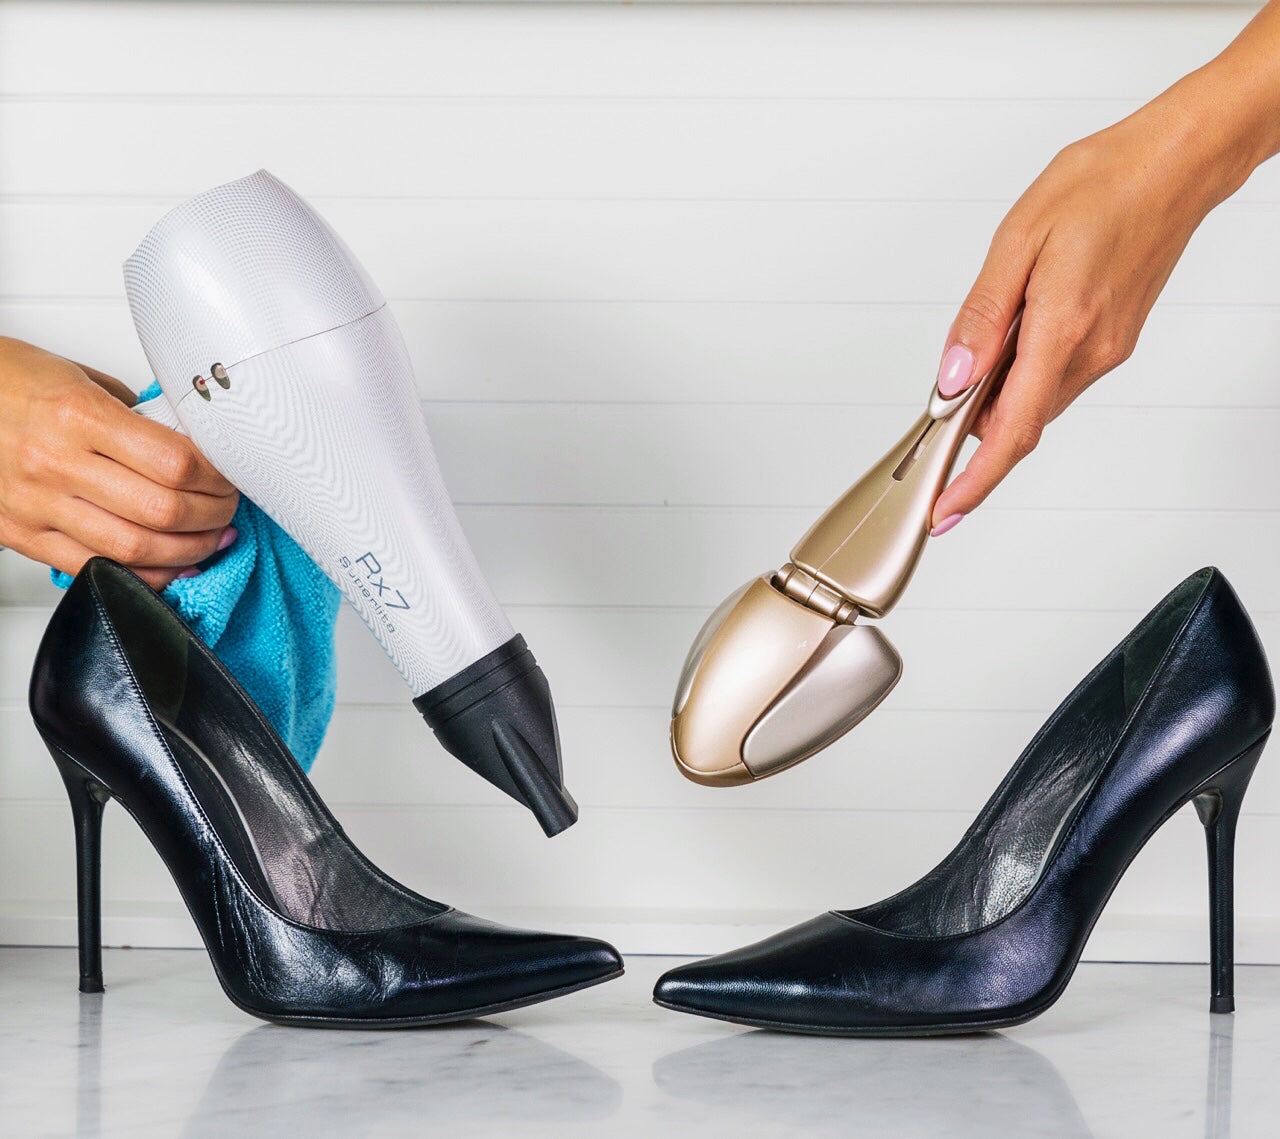 Forme shoe shapers vs. hairdryer